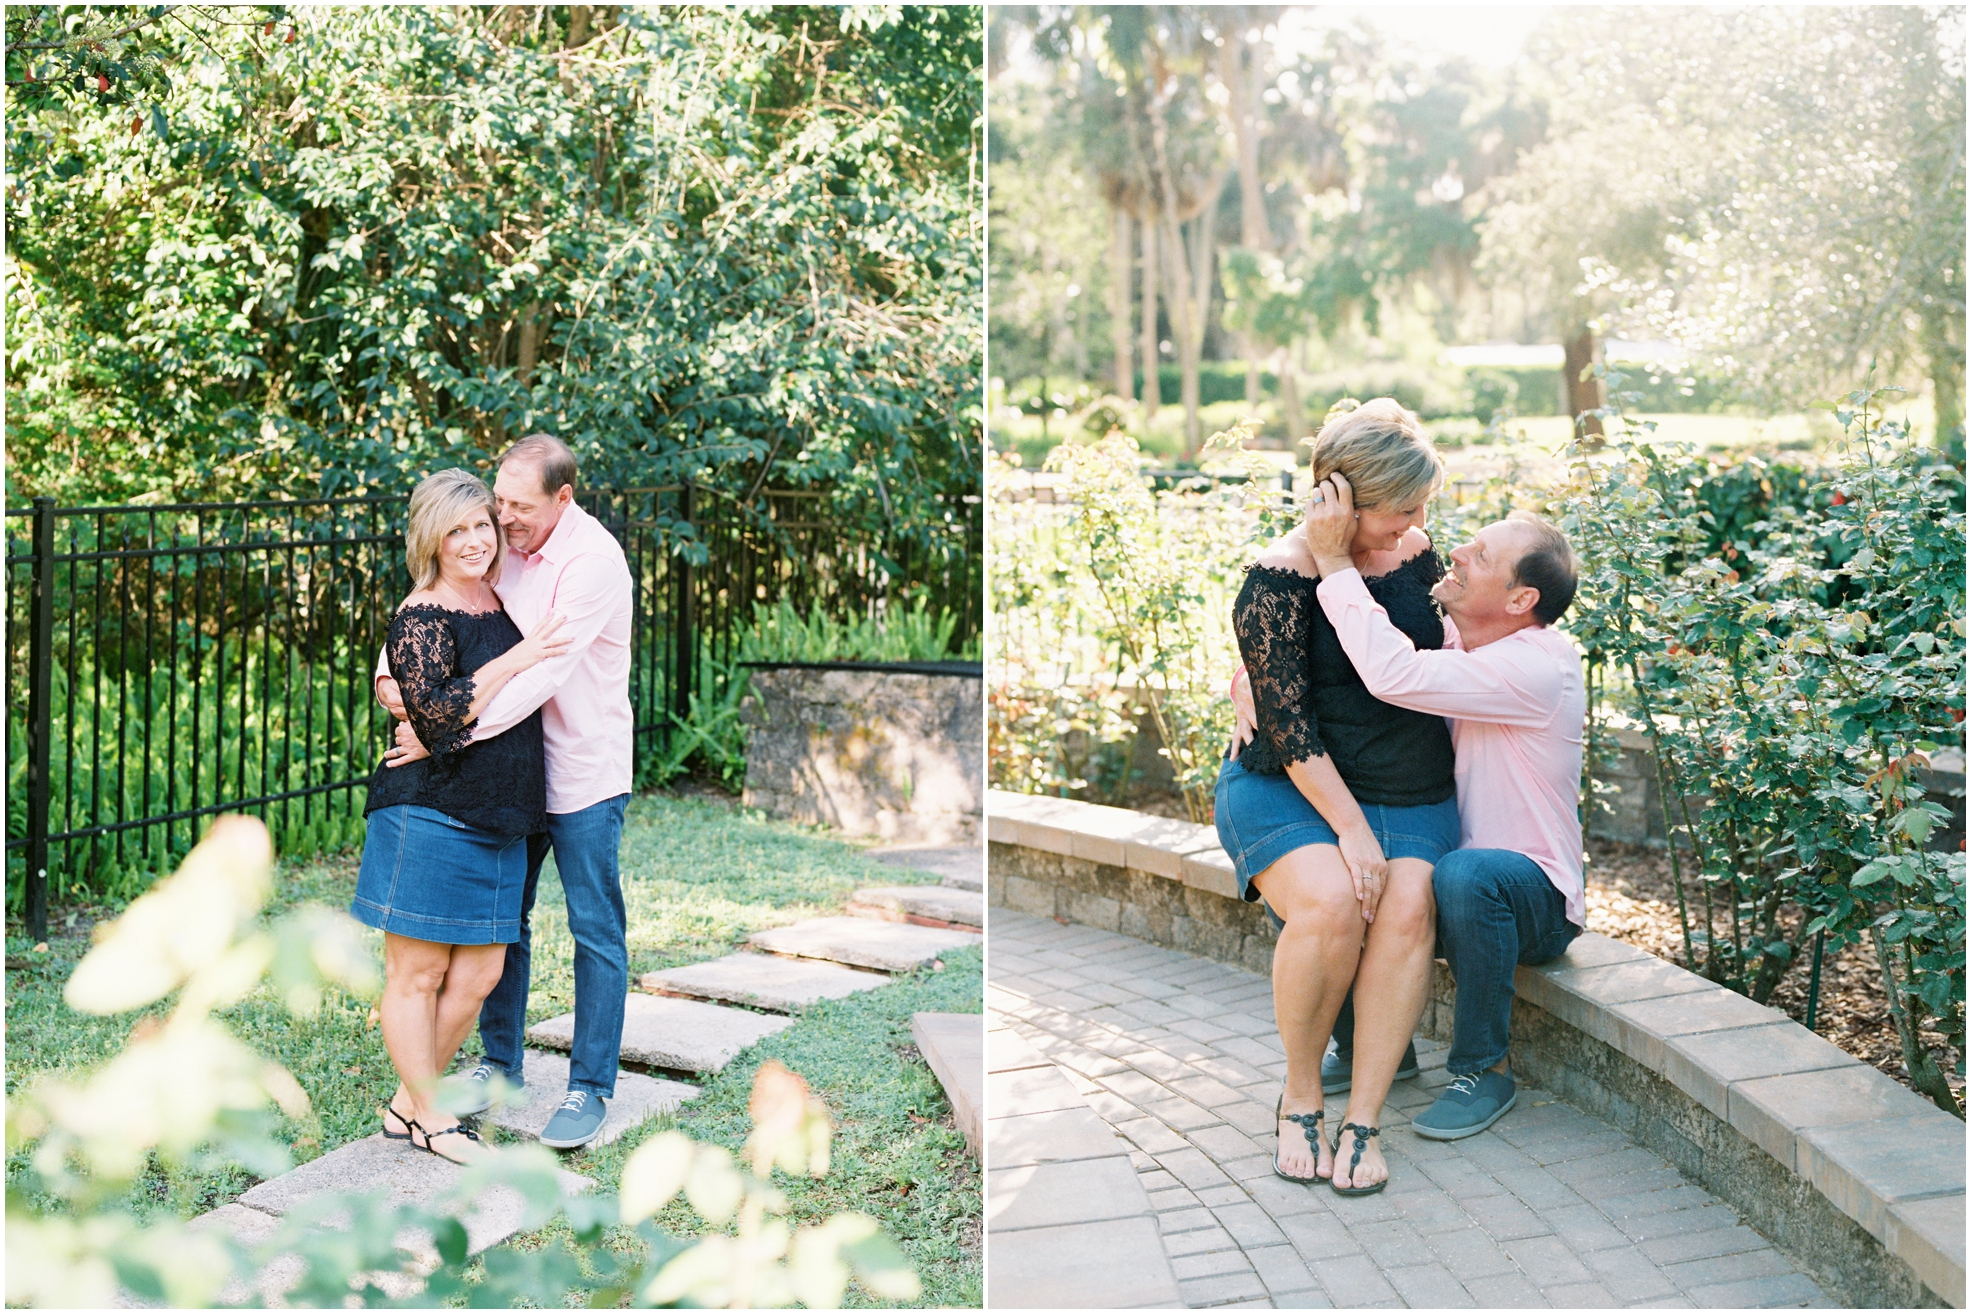 Lisa Silva Photography- Jacksonville, St. Augustine, Amelia Island, Ponte Vedra Beach, North East Florida Fine Art Film Photographer- Anniversary Session at Washington Oaks in Palm Coast, Florida_0039.jpg